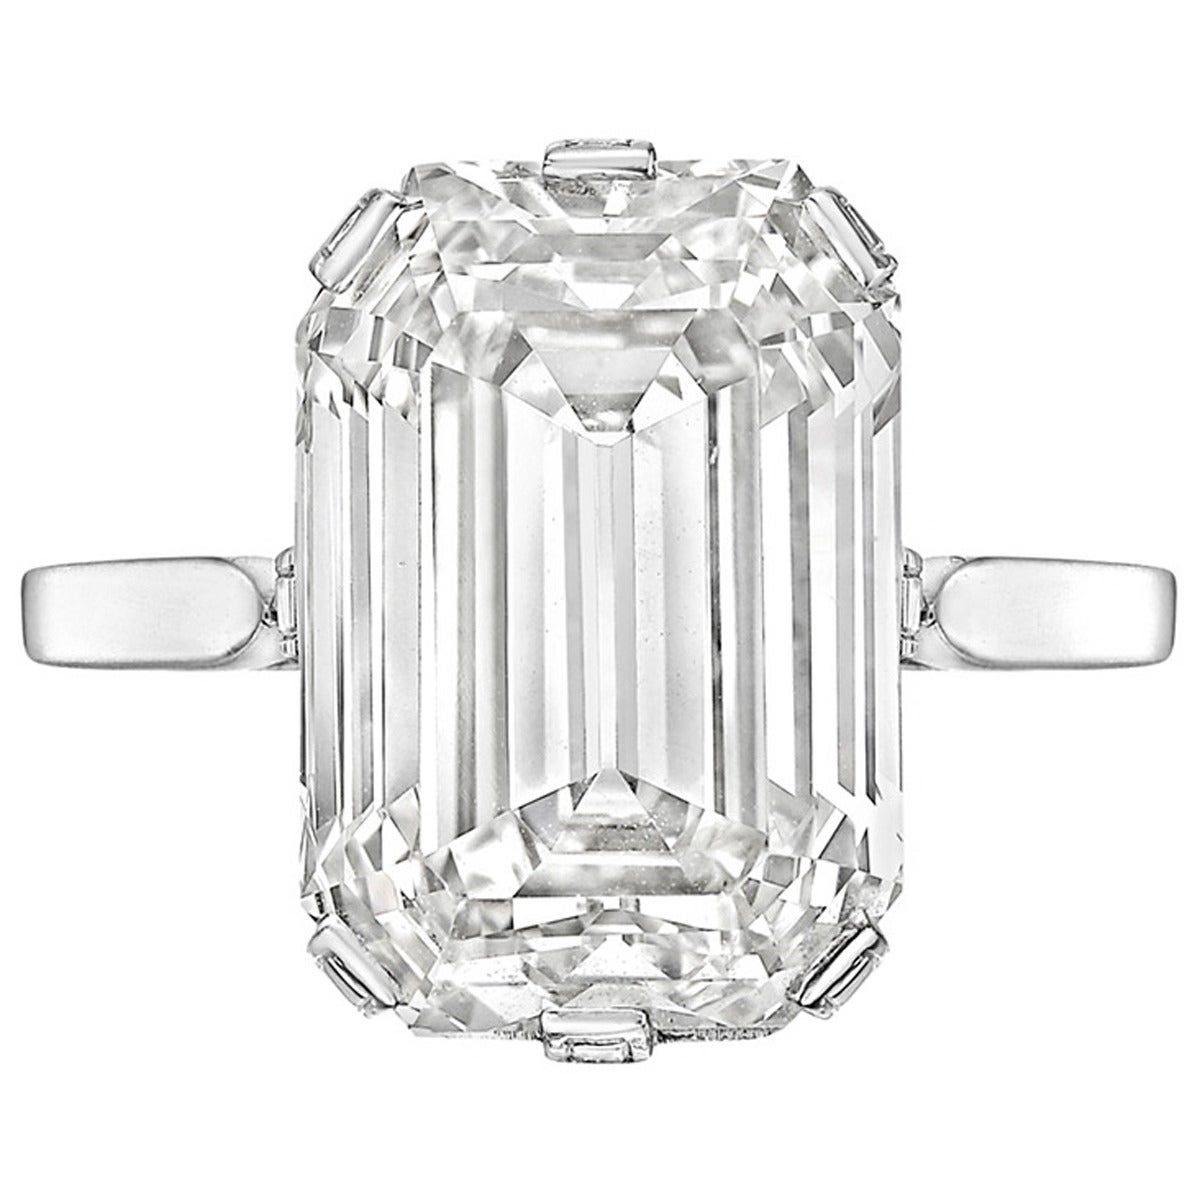 8 40 Carat Emerald Cut Diamond Solitaire Engagement Ring For Sale at 1stdibs